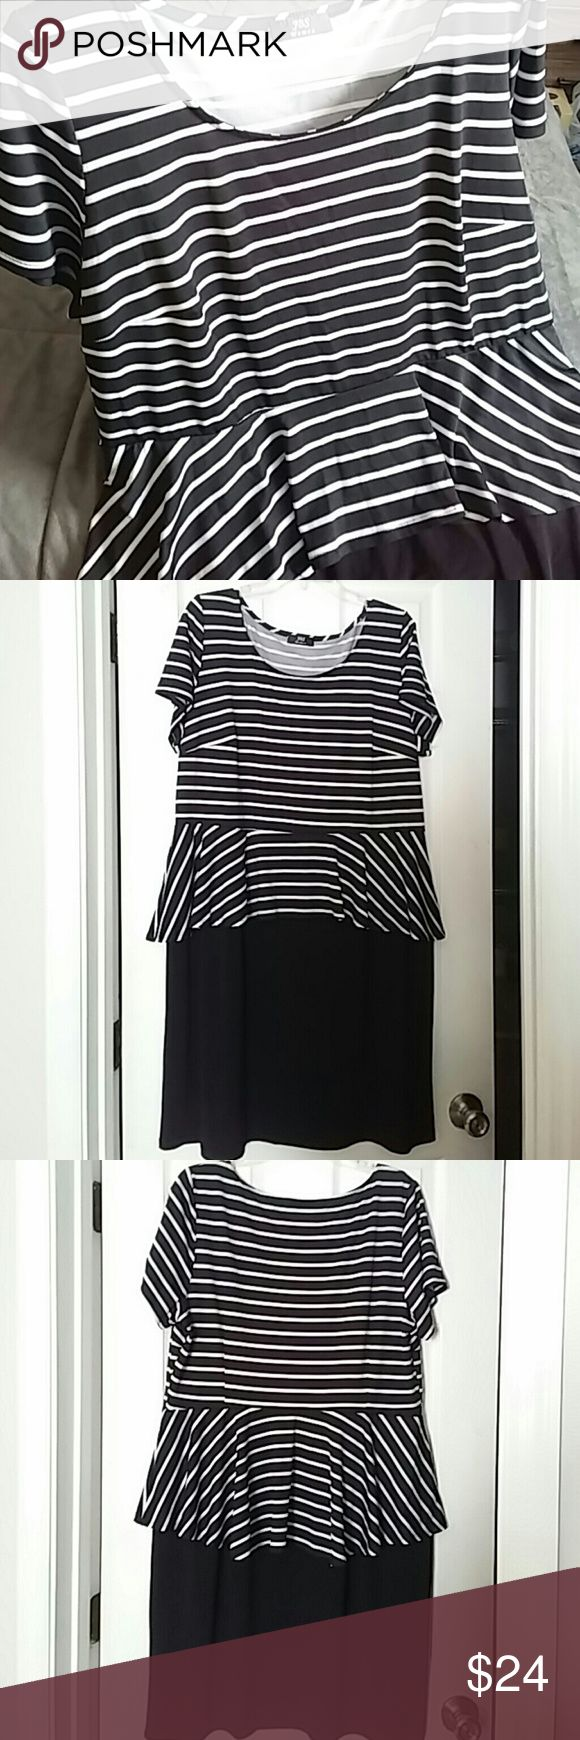 Peplum dress in jersey matte Cute black and white peplum dress.  Length is to the knee.  Wrinkle free and machine wash.  Never worn or washed. Dresses Maxi